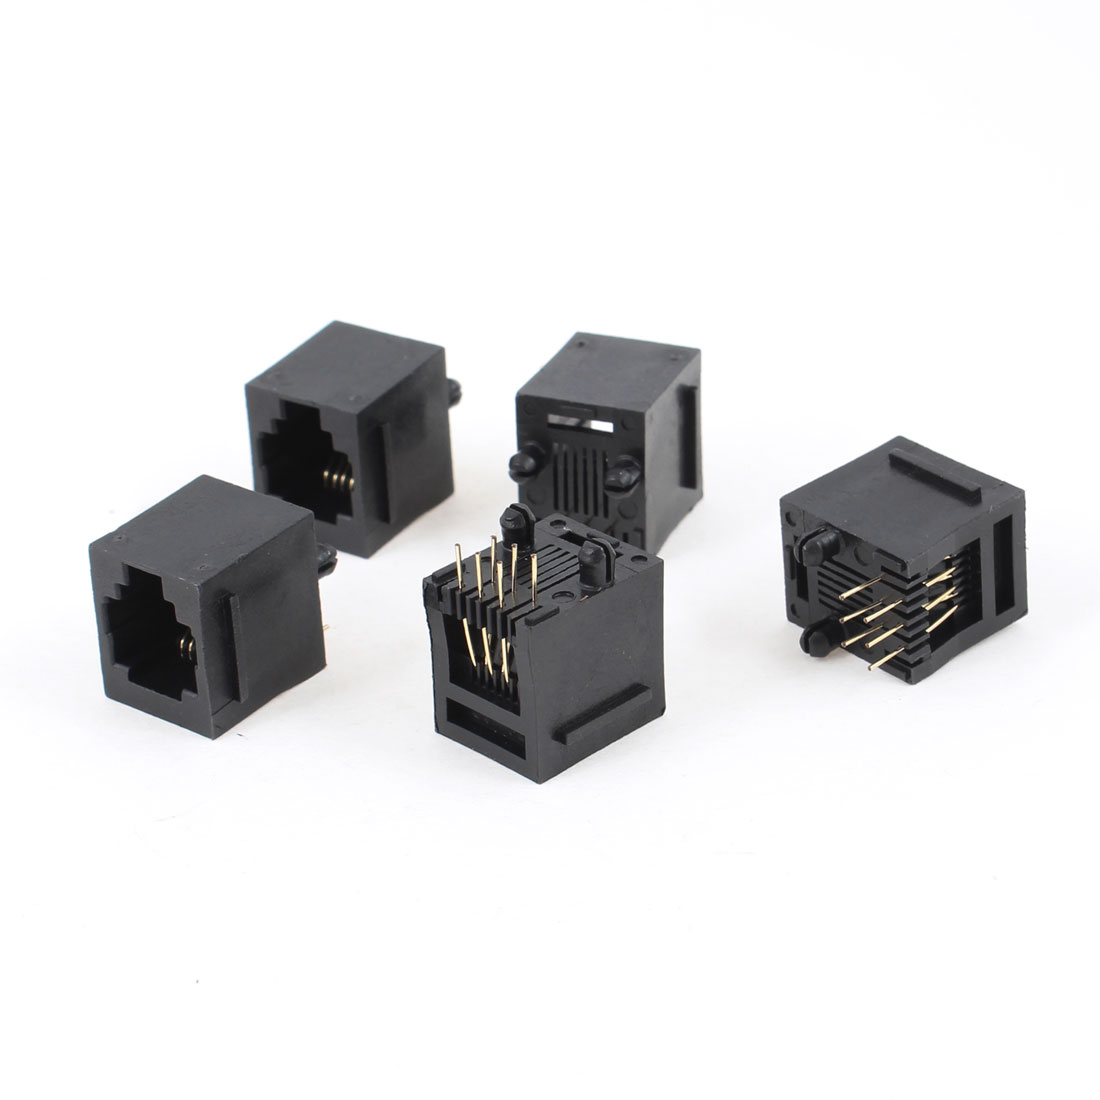 5 Pcs 180 Degree RJ12 6P6C 6 Round Pin Network Modular PCB Connector Jacks Black